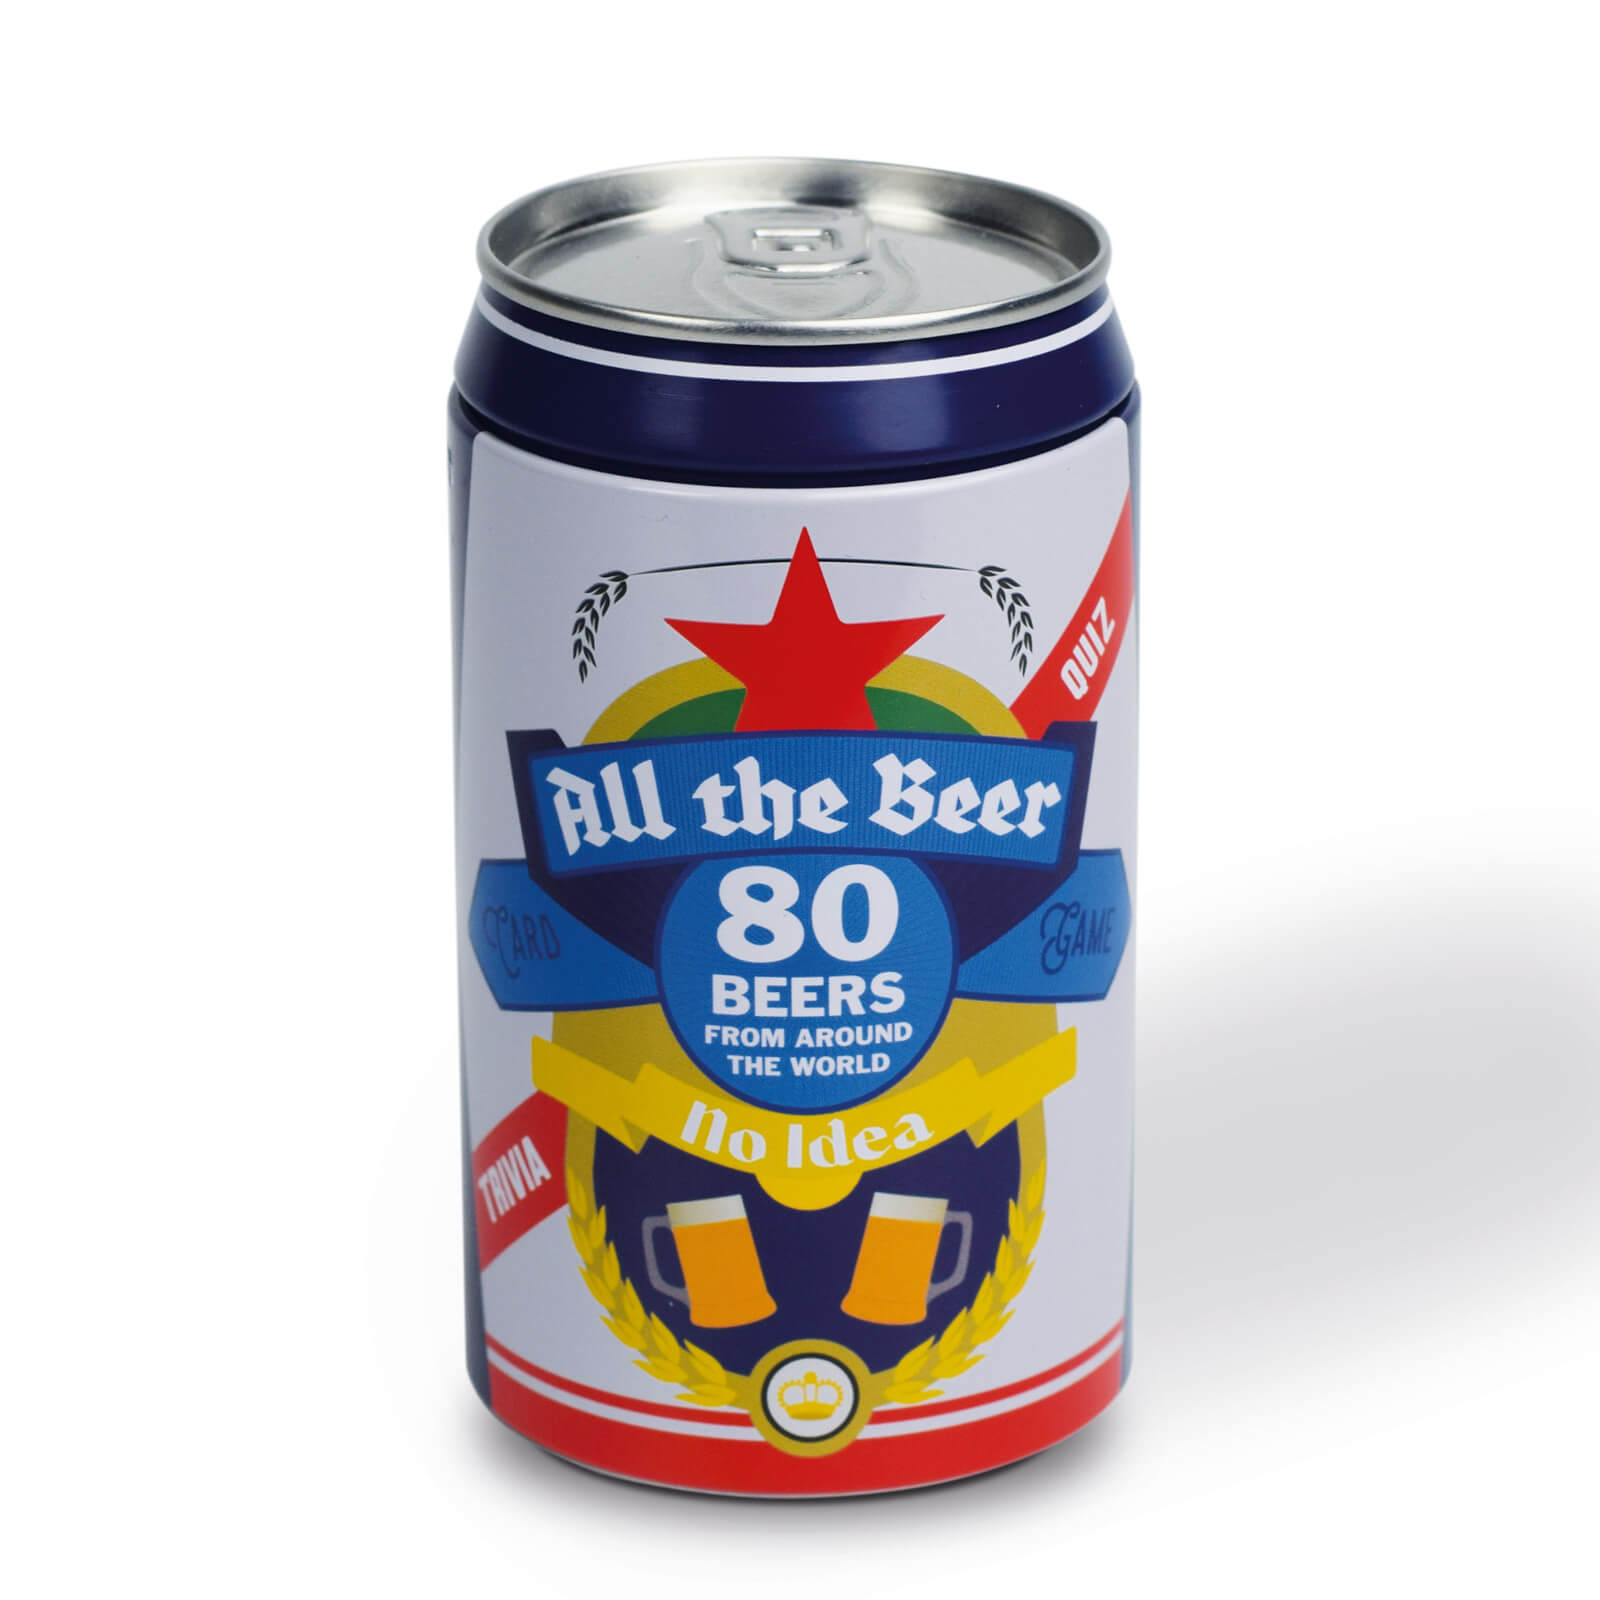 Image of All the Beer, No Idea Card Game